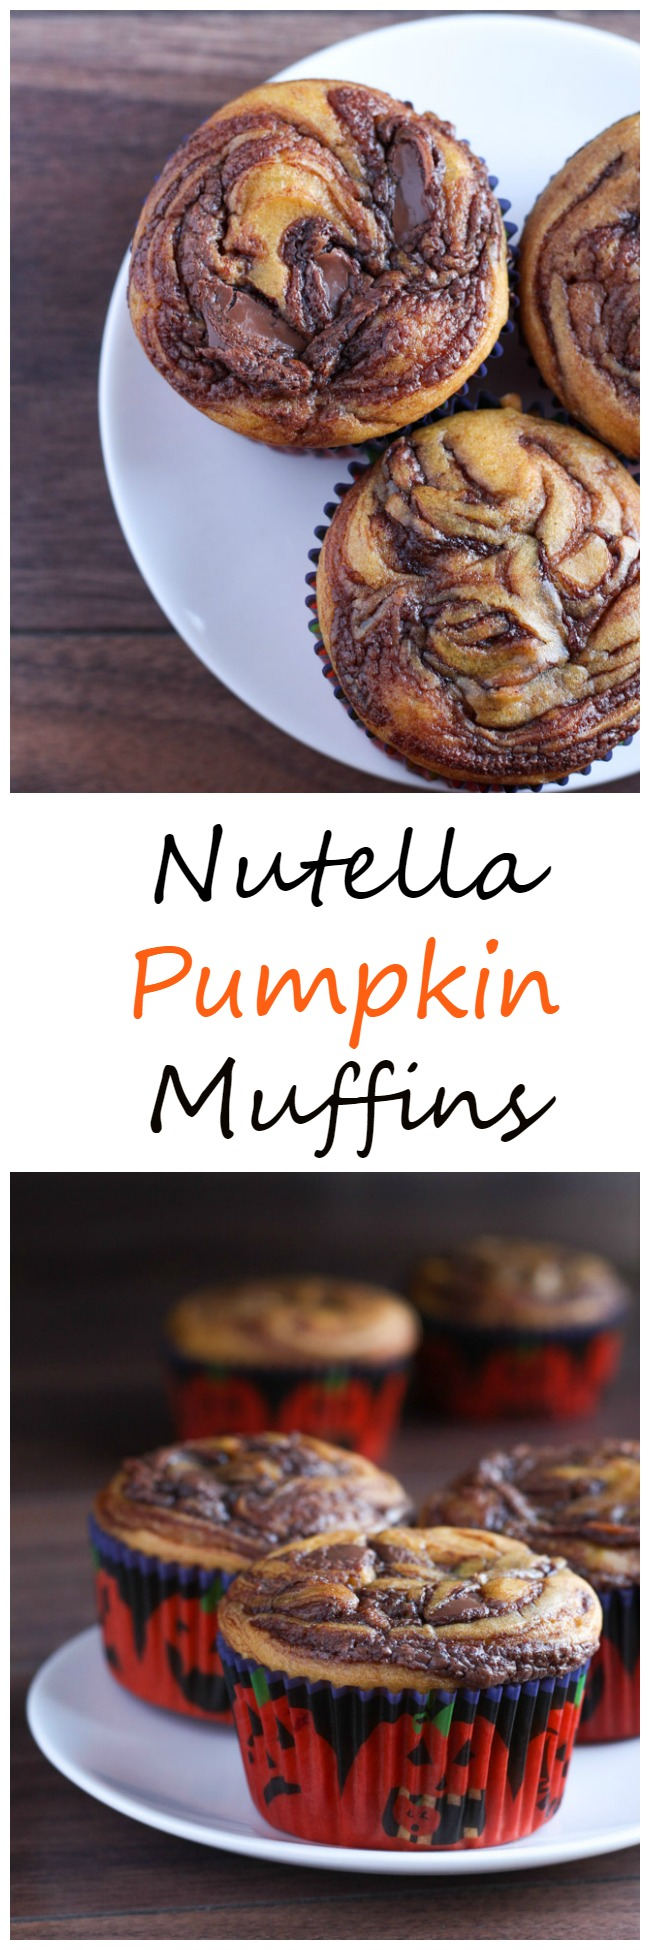 A yummy and simple recipe for pumpkin muffins with a gorgeous nutella swirl on top. Sure to be a holiday or breakfast favorite! www.cookingismessy.com